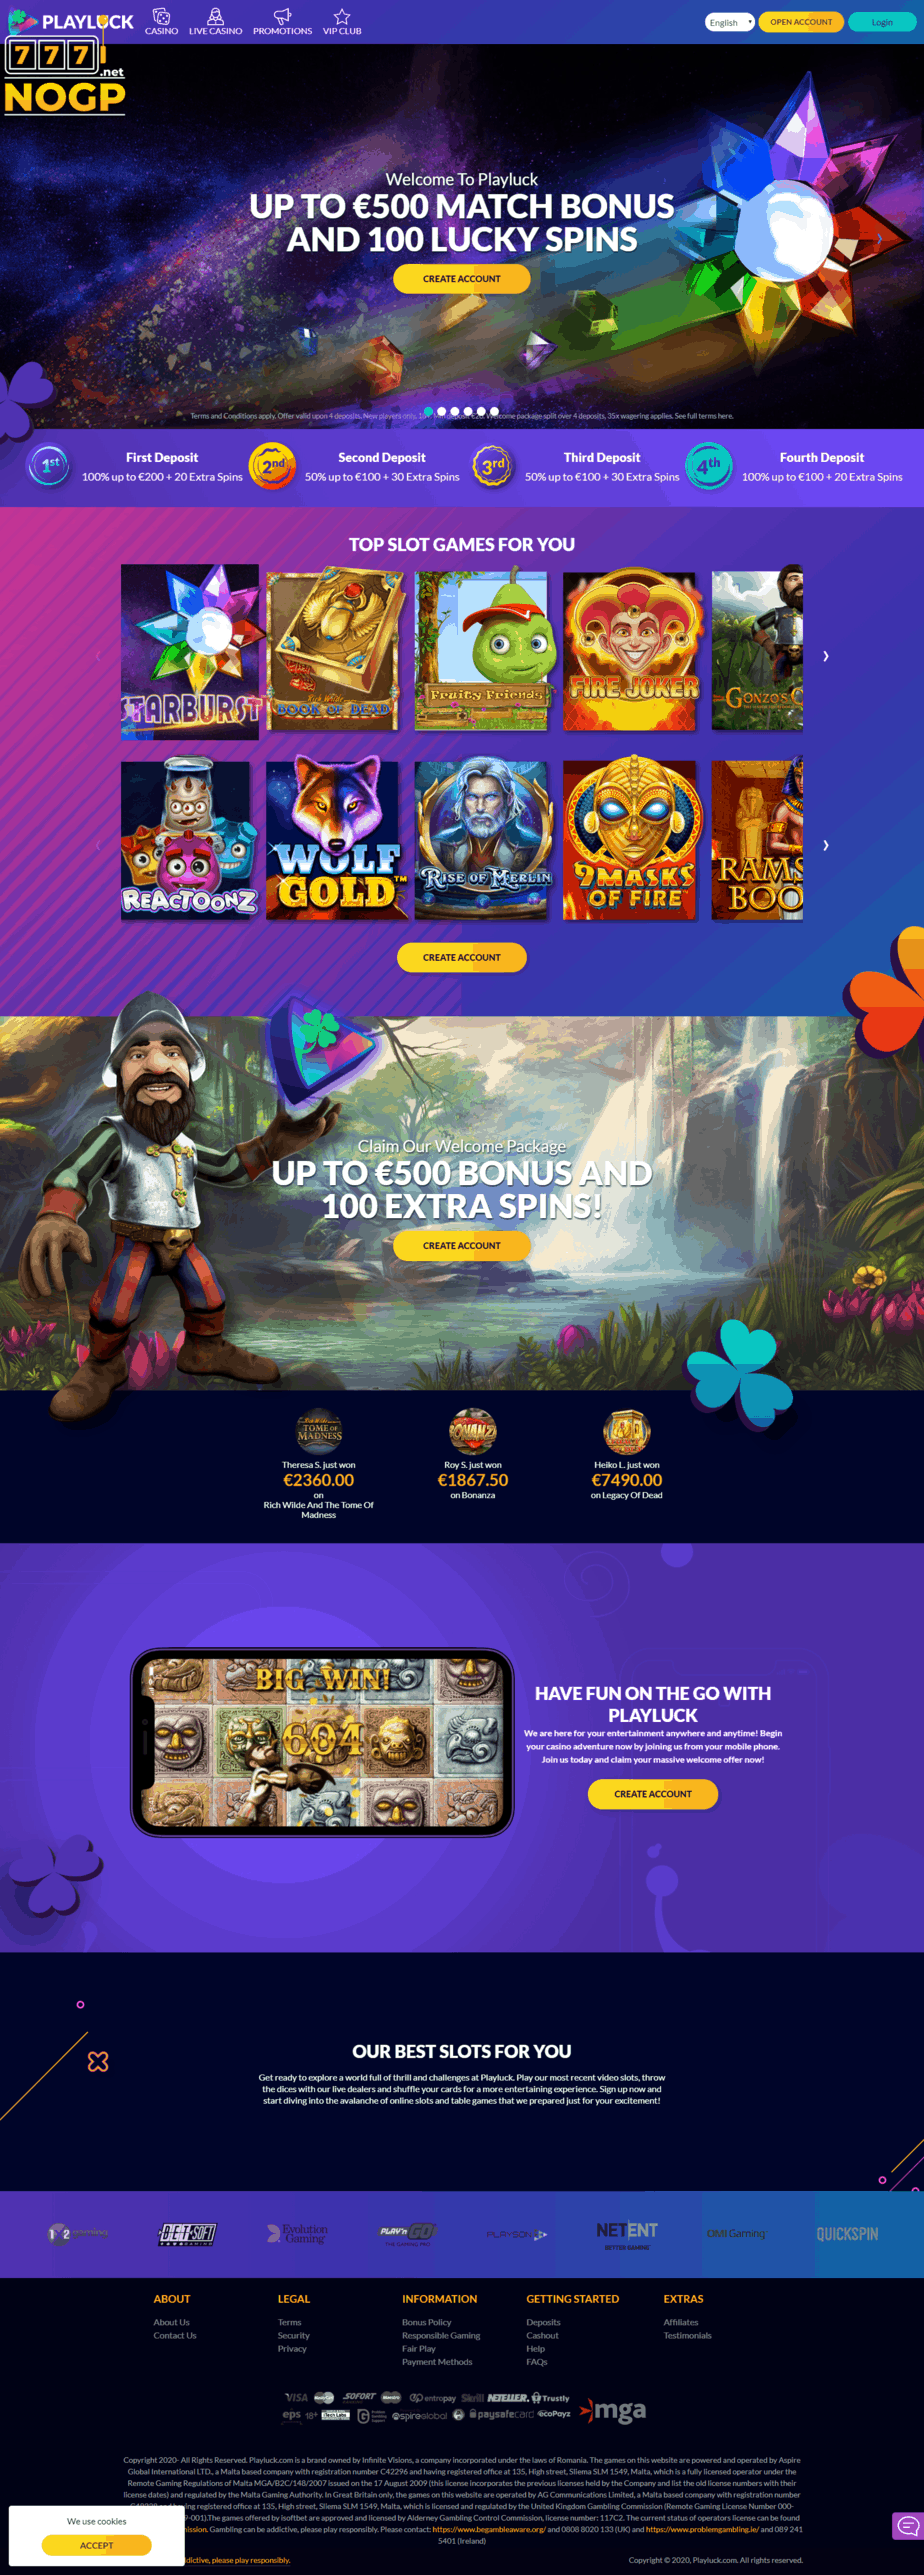 Casino sign up offers